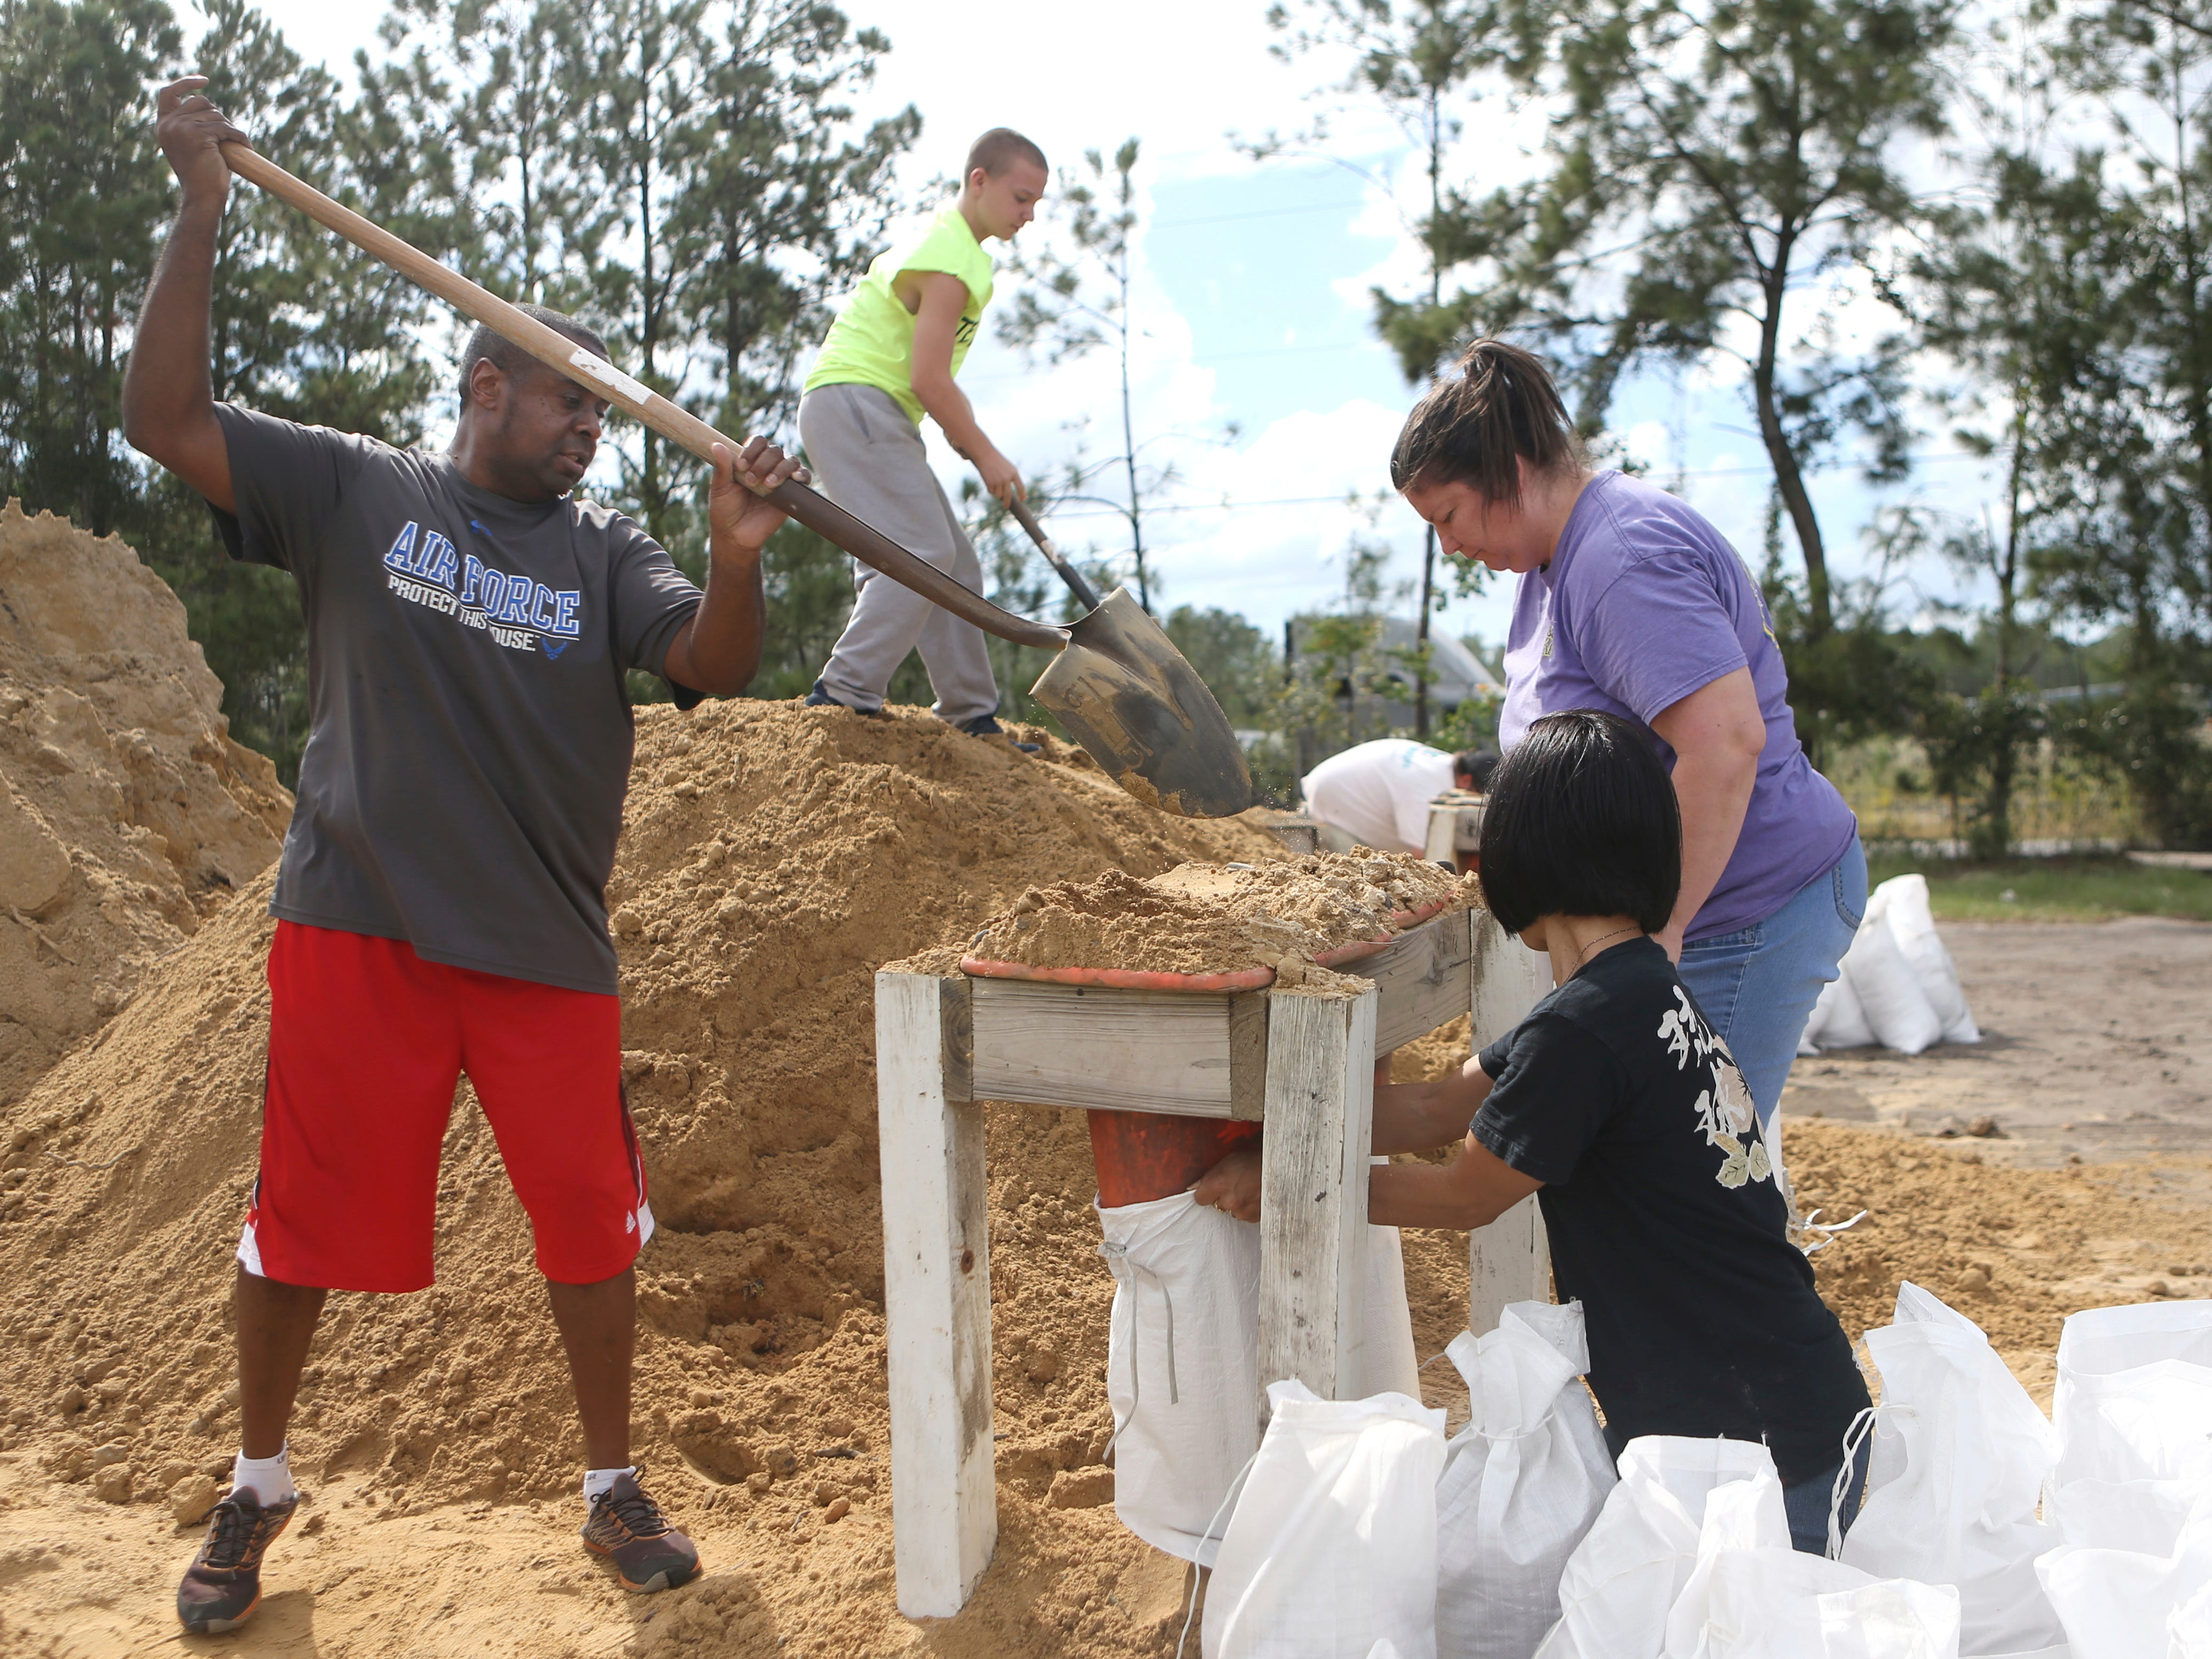 From left, Haskel Johnson, Daniel Tippett, Jennifer Tippett and Nobuko Johnson fill sand bags at the Lynn Haven Sports Complex in Lynn Haven, Fla., Monday, Oct. 8, 2018, to prepare for Hurricane Michael.